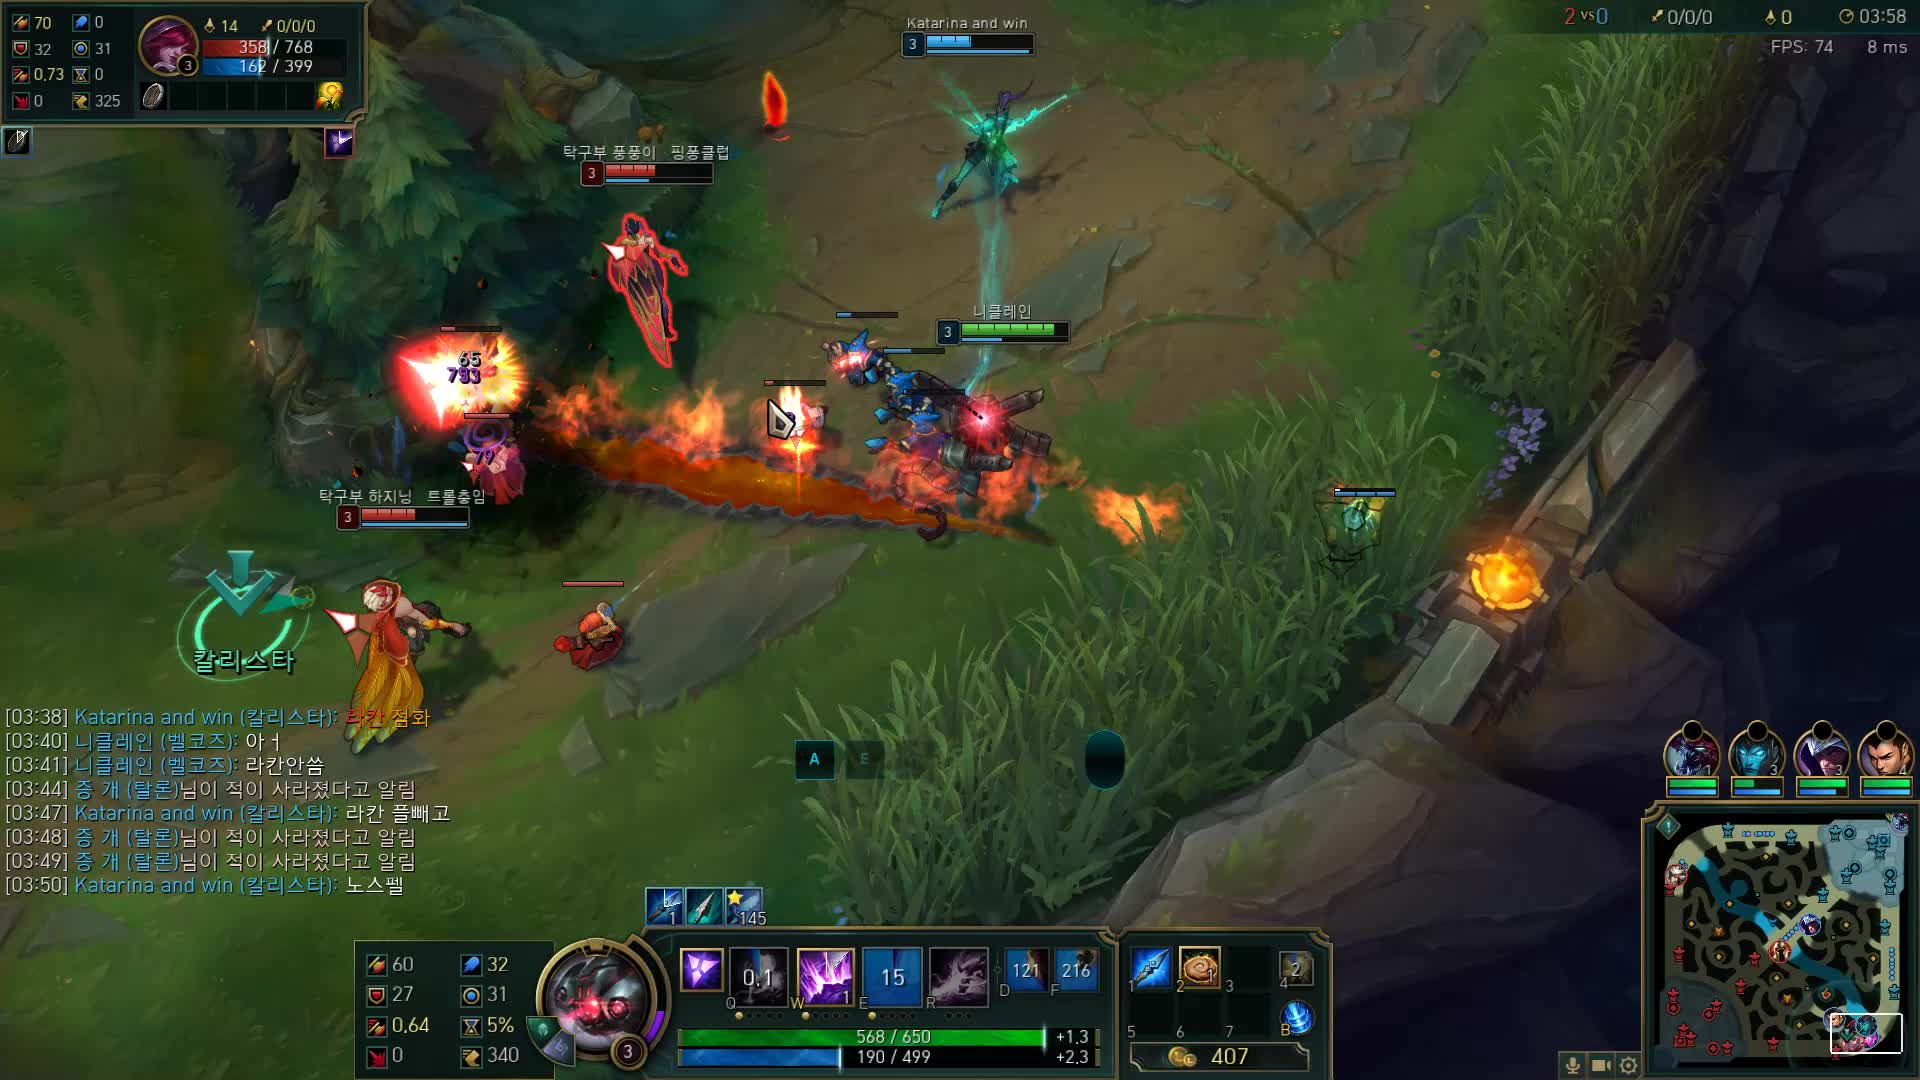 Assist, Gaming, Kill, LeagueOfLegends, Overwolf, Vel'Koz, Check out my 동영상! LeagueOfLegends | Captured by Overwolf GIFs